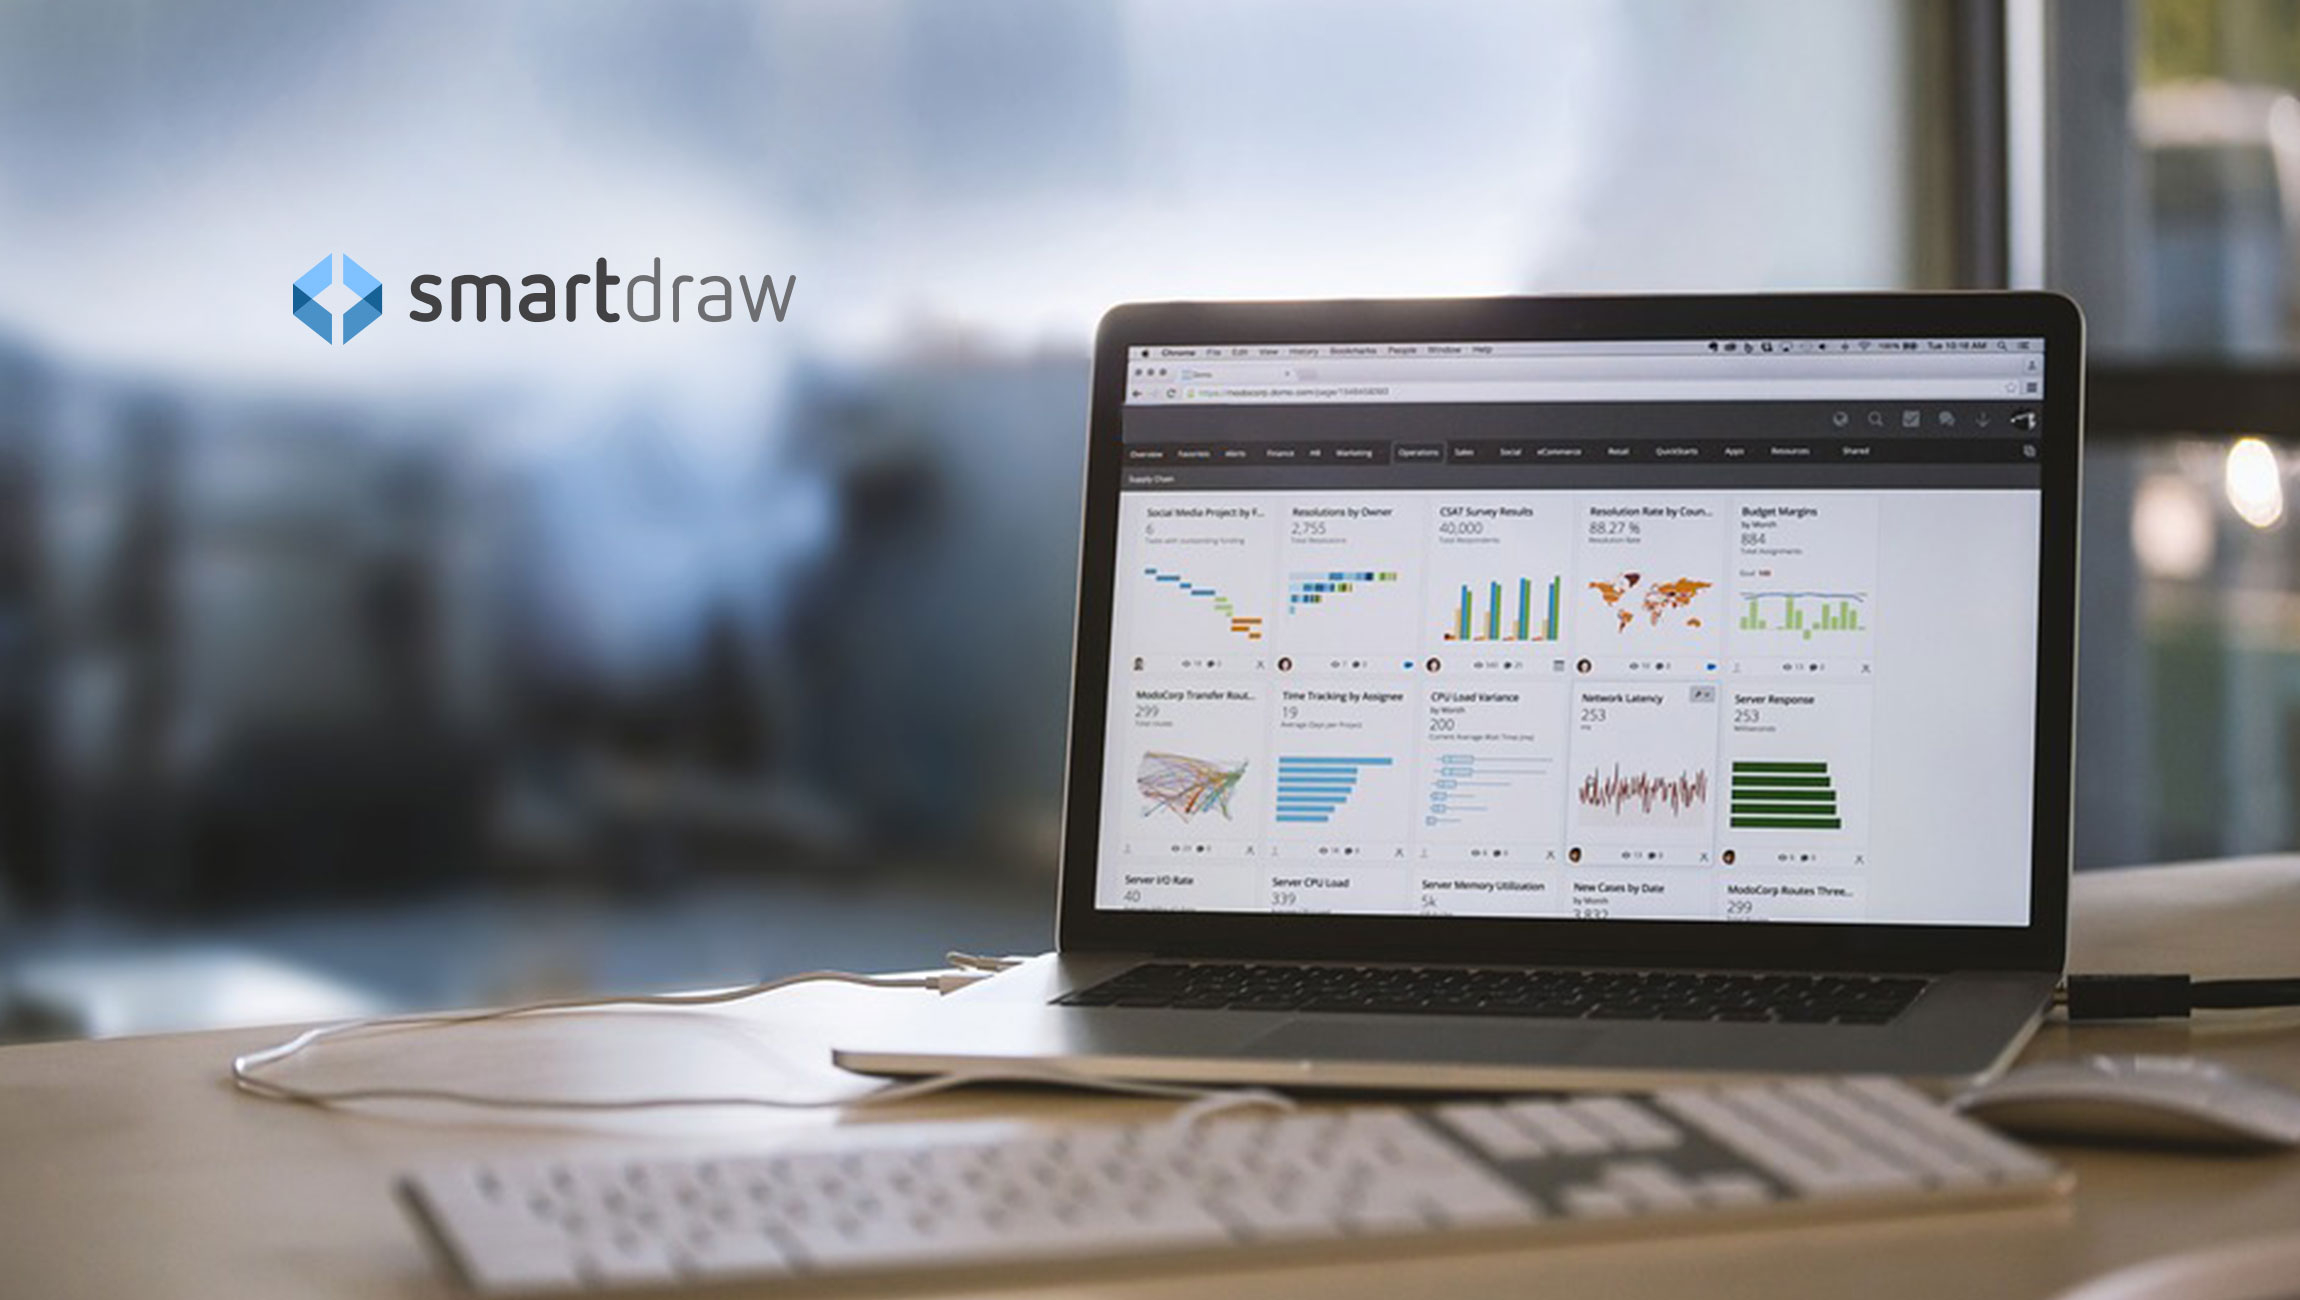 Smartdraw Reports Momentum As Data To Diagram Market Heats Up